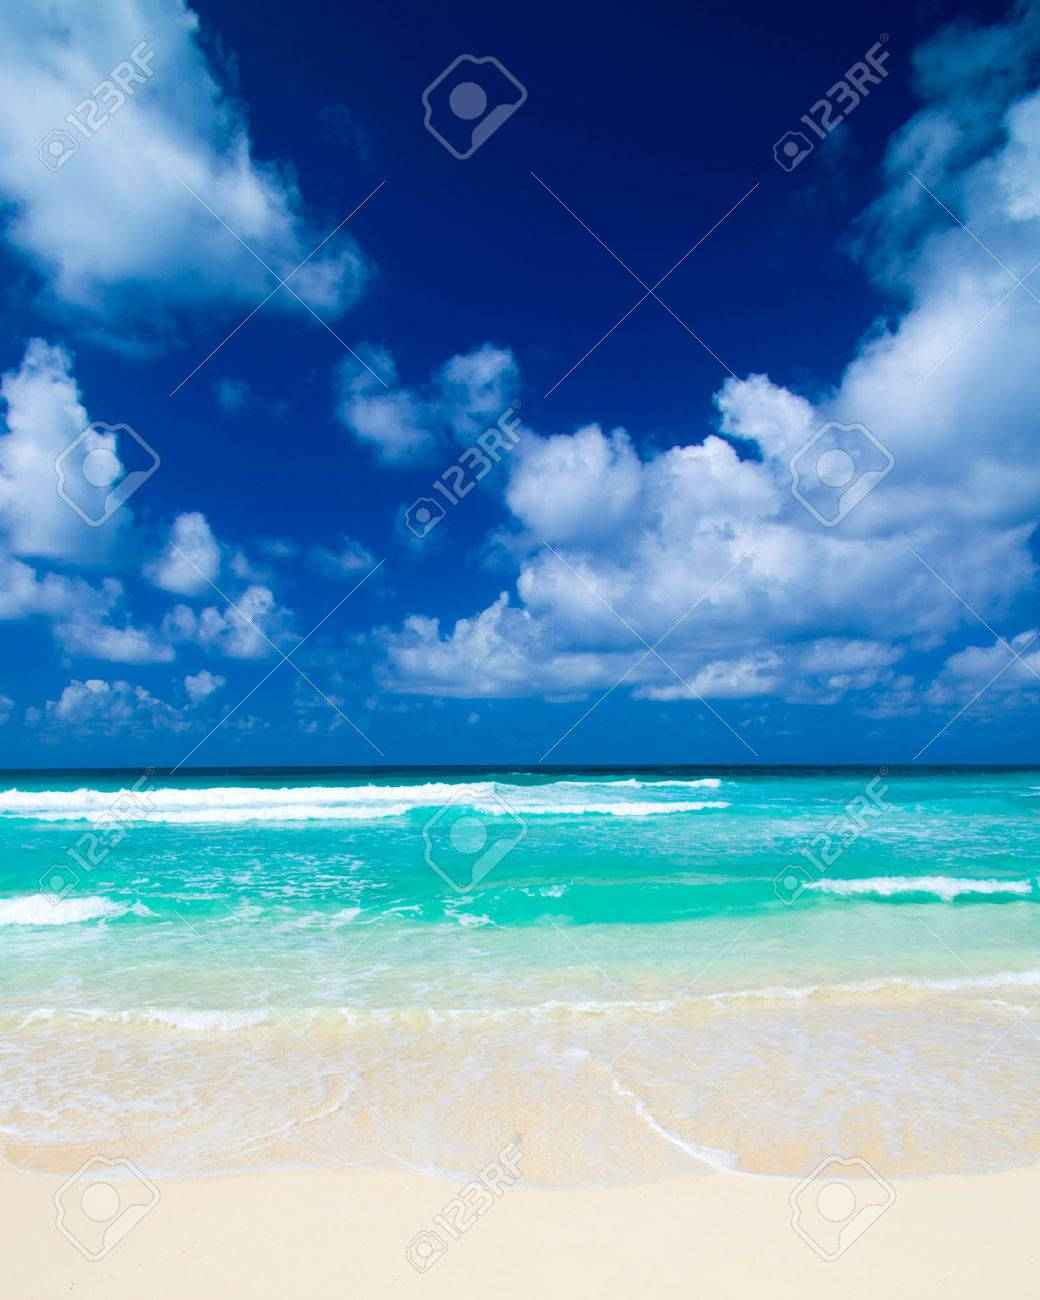 Caribbean Beach and Palm tree  .Paradise. Vacation and Tourism concept. Stock Photo - 32640742